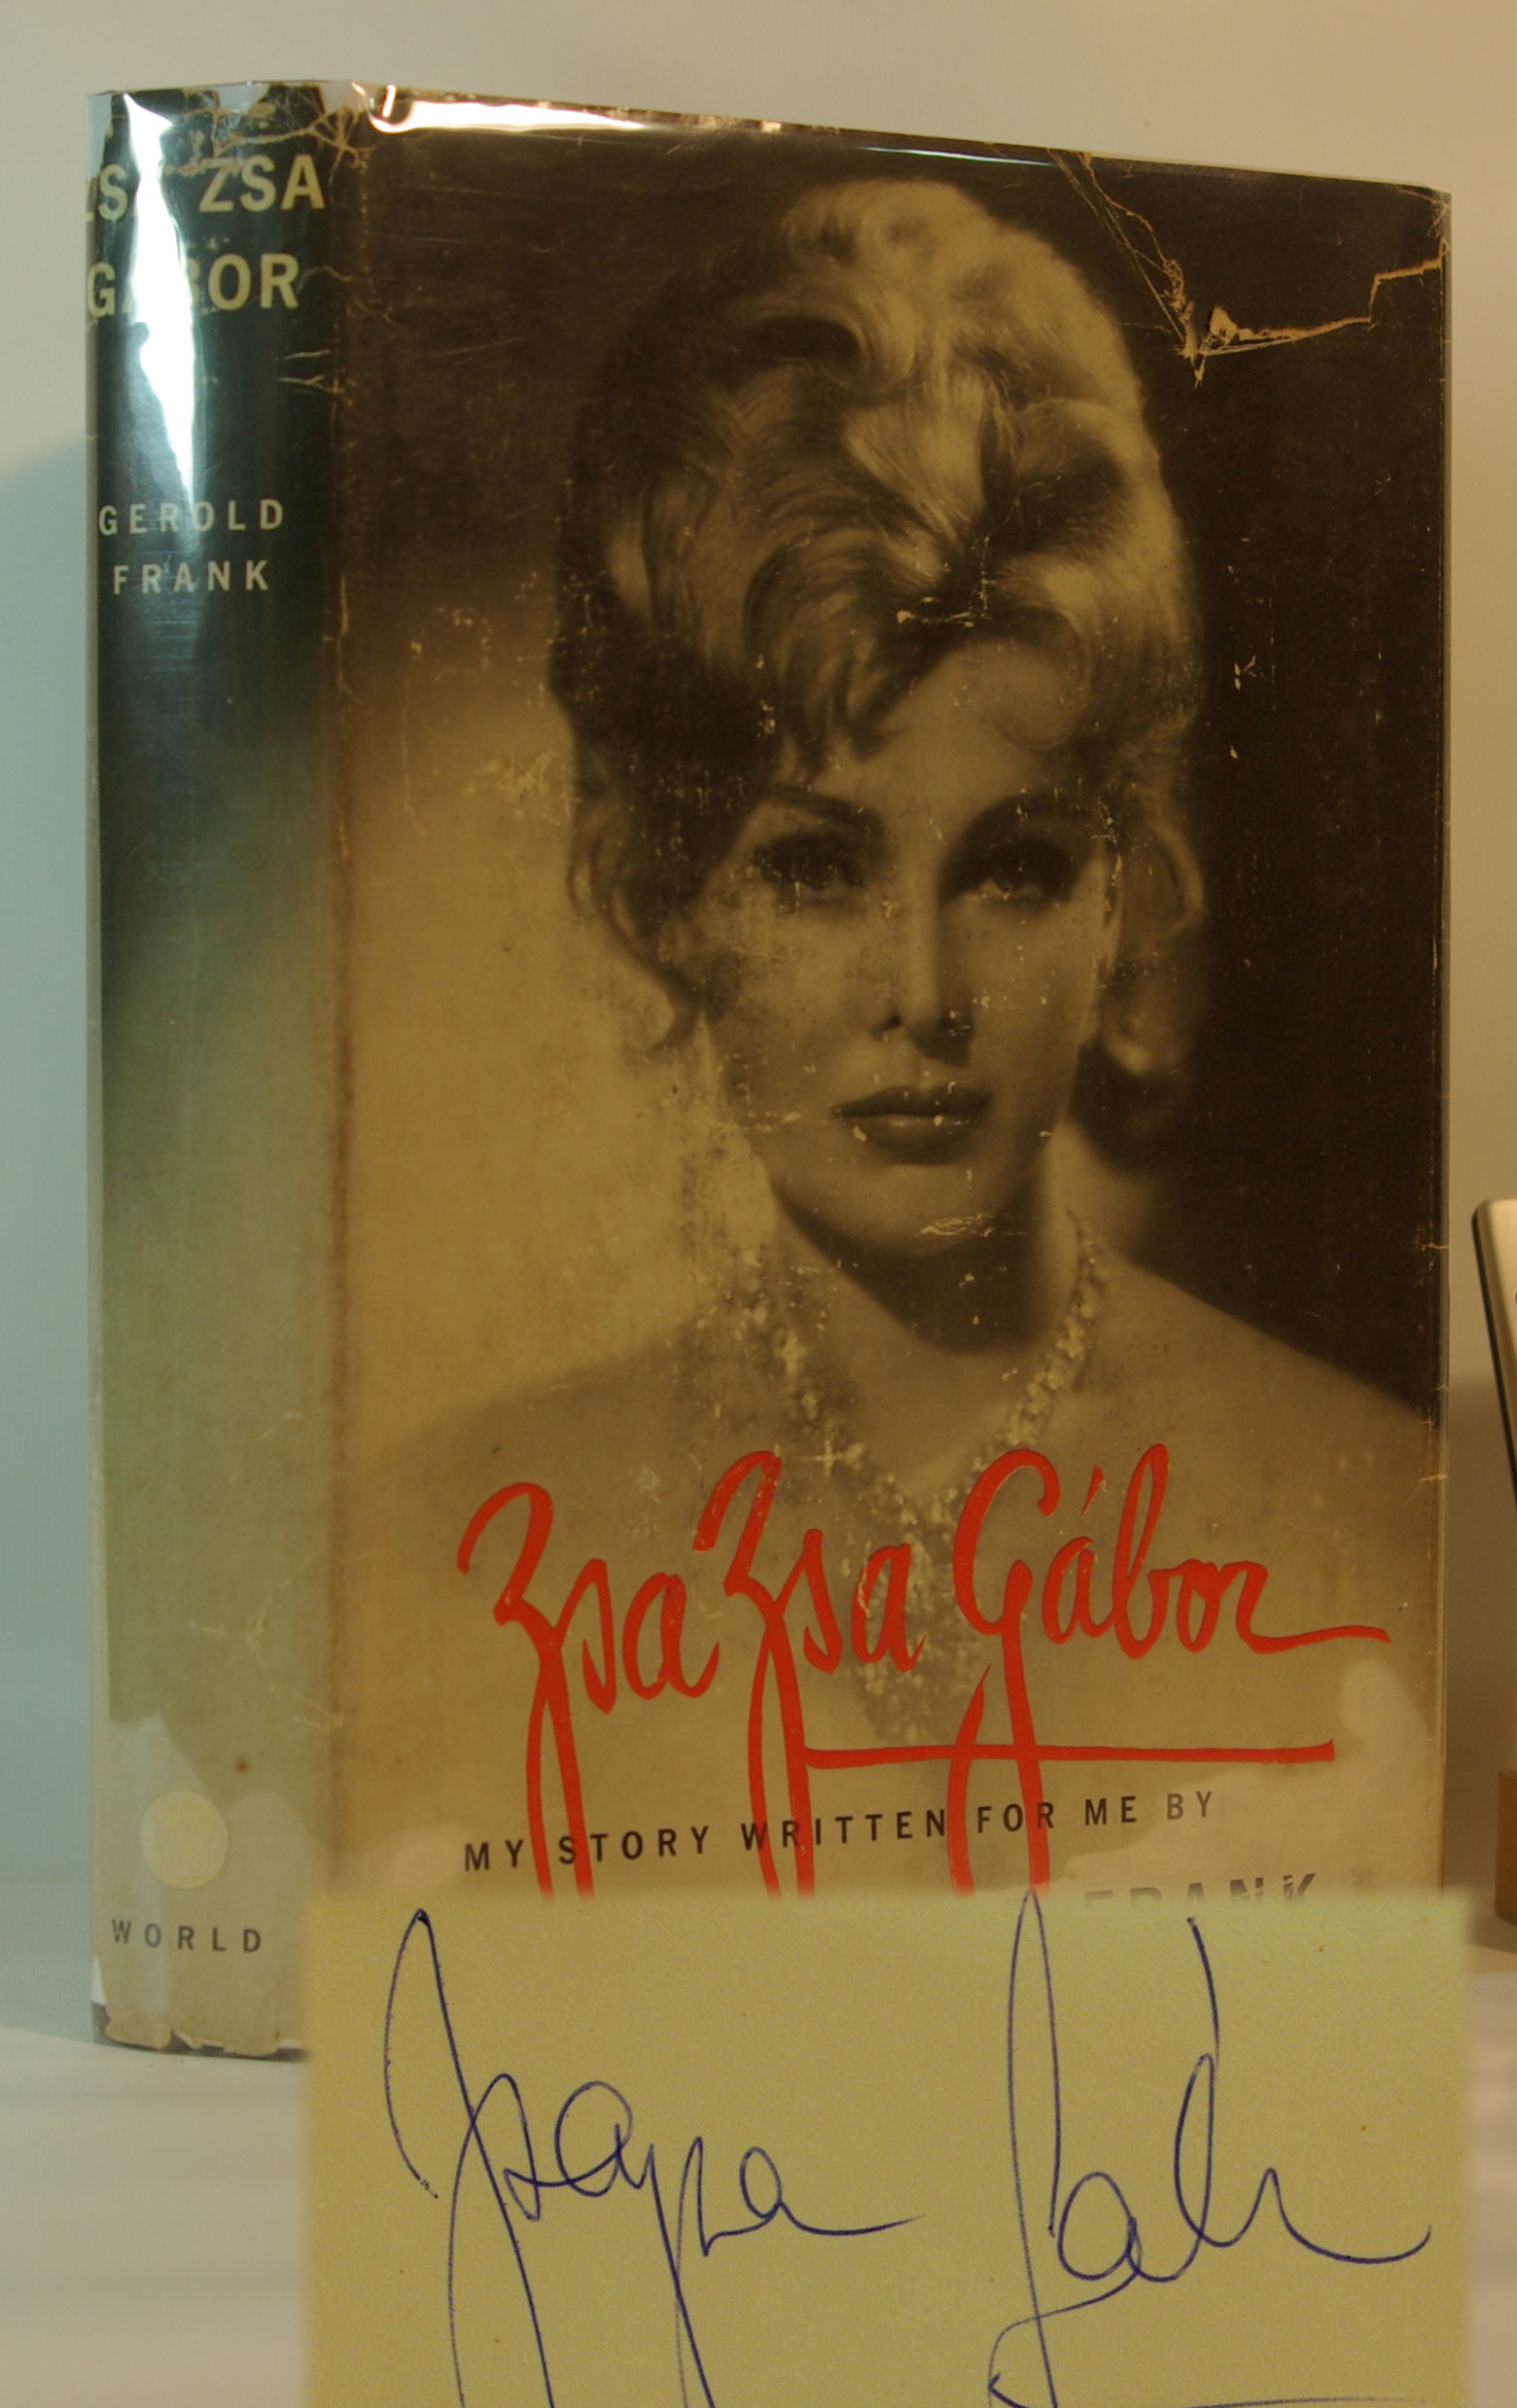 Zsa Zsa Gabor My Story